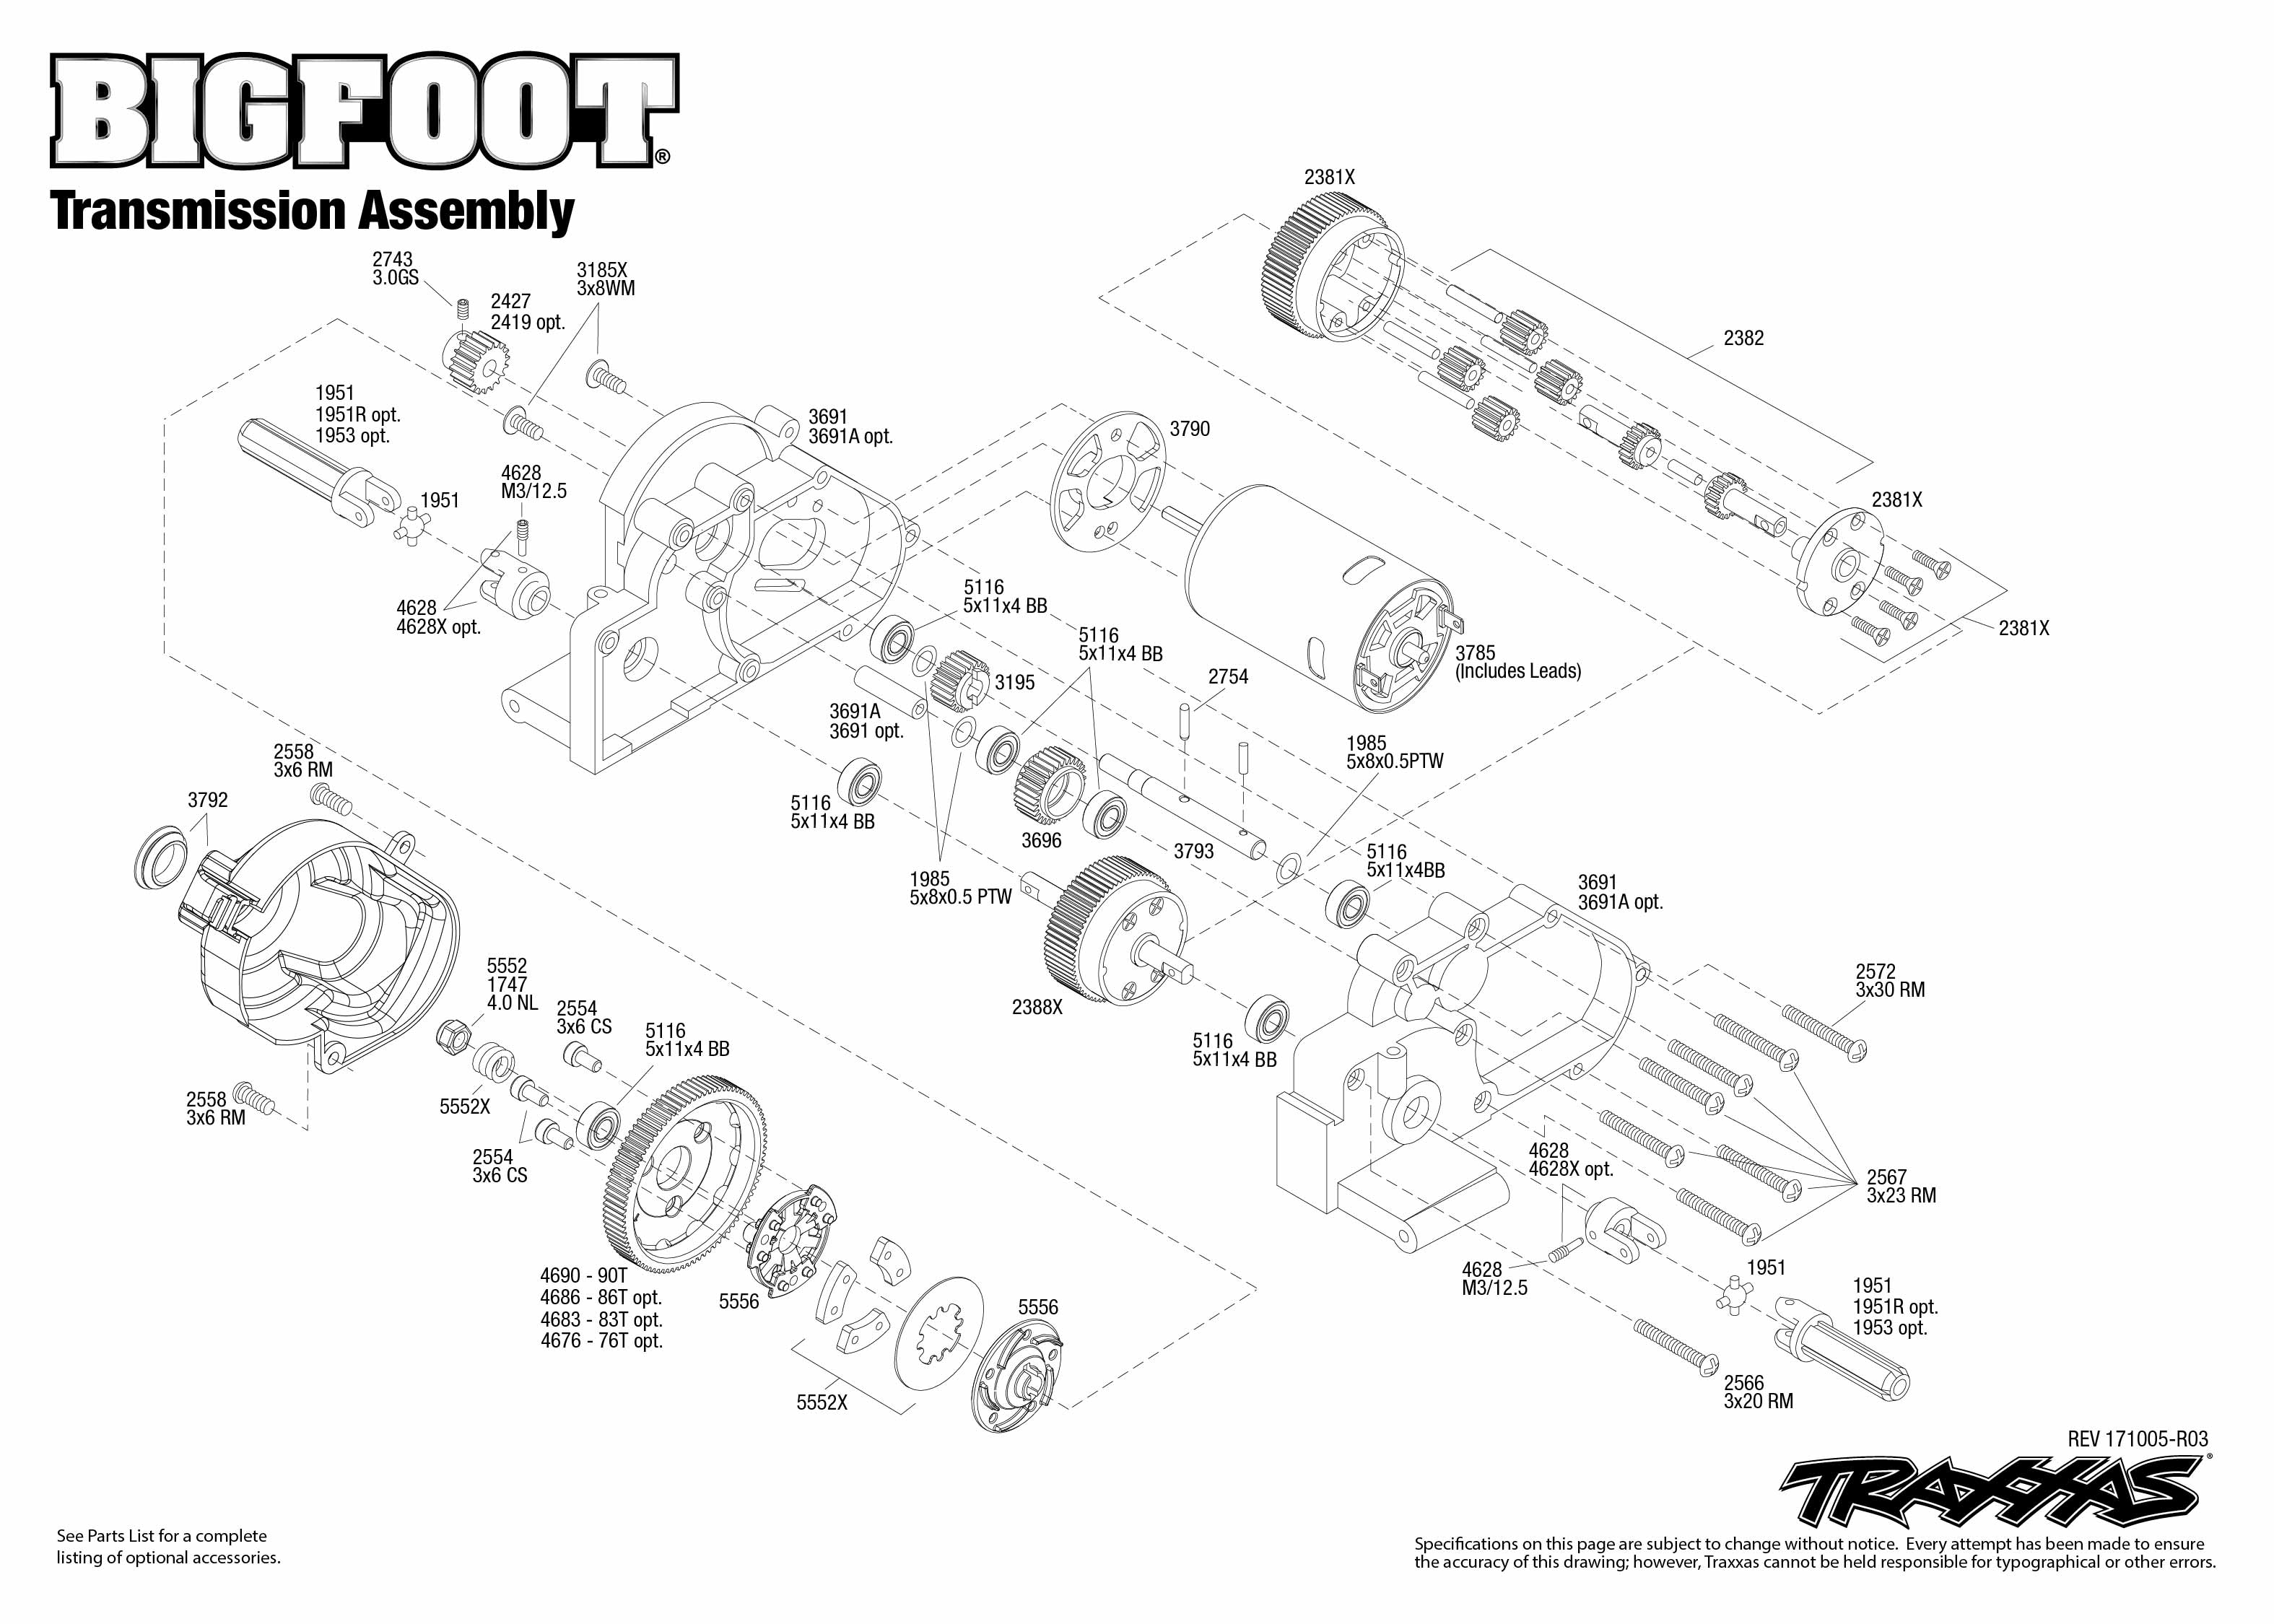 Bigfoot No. 1 (36034-1) Transmission Assembly Exploded